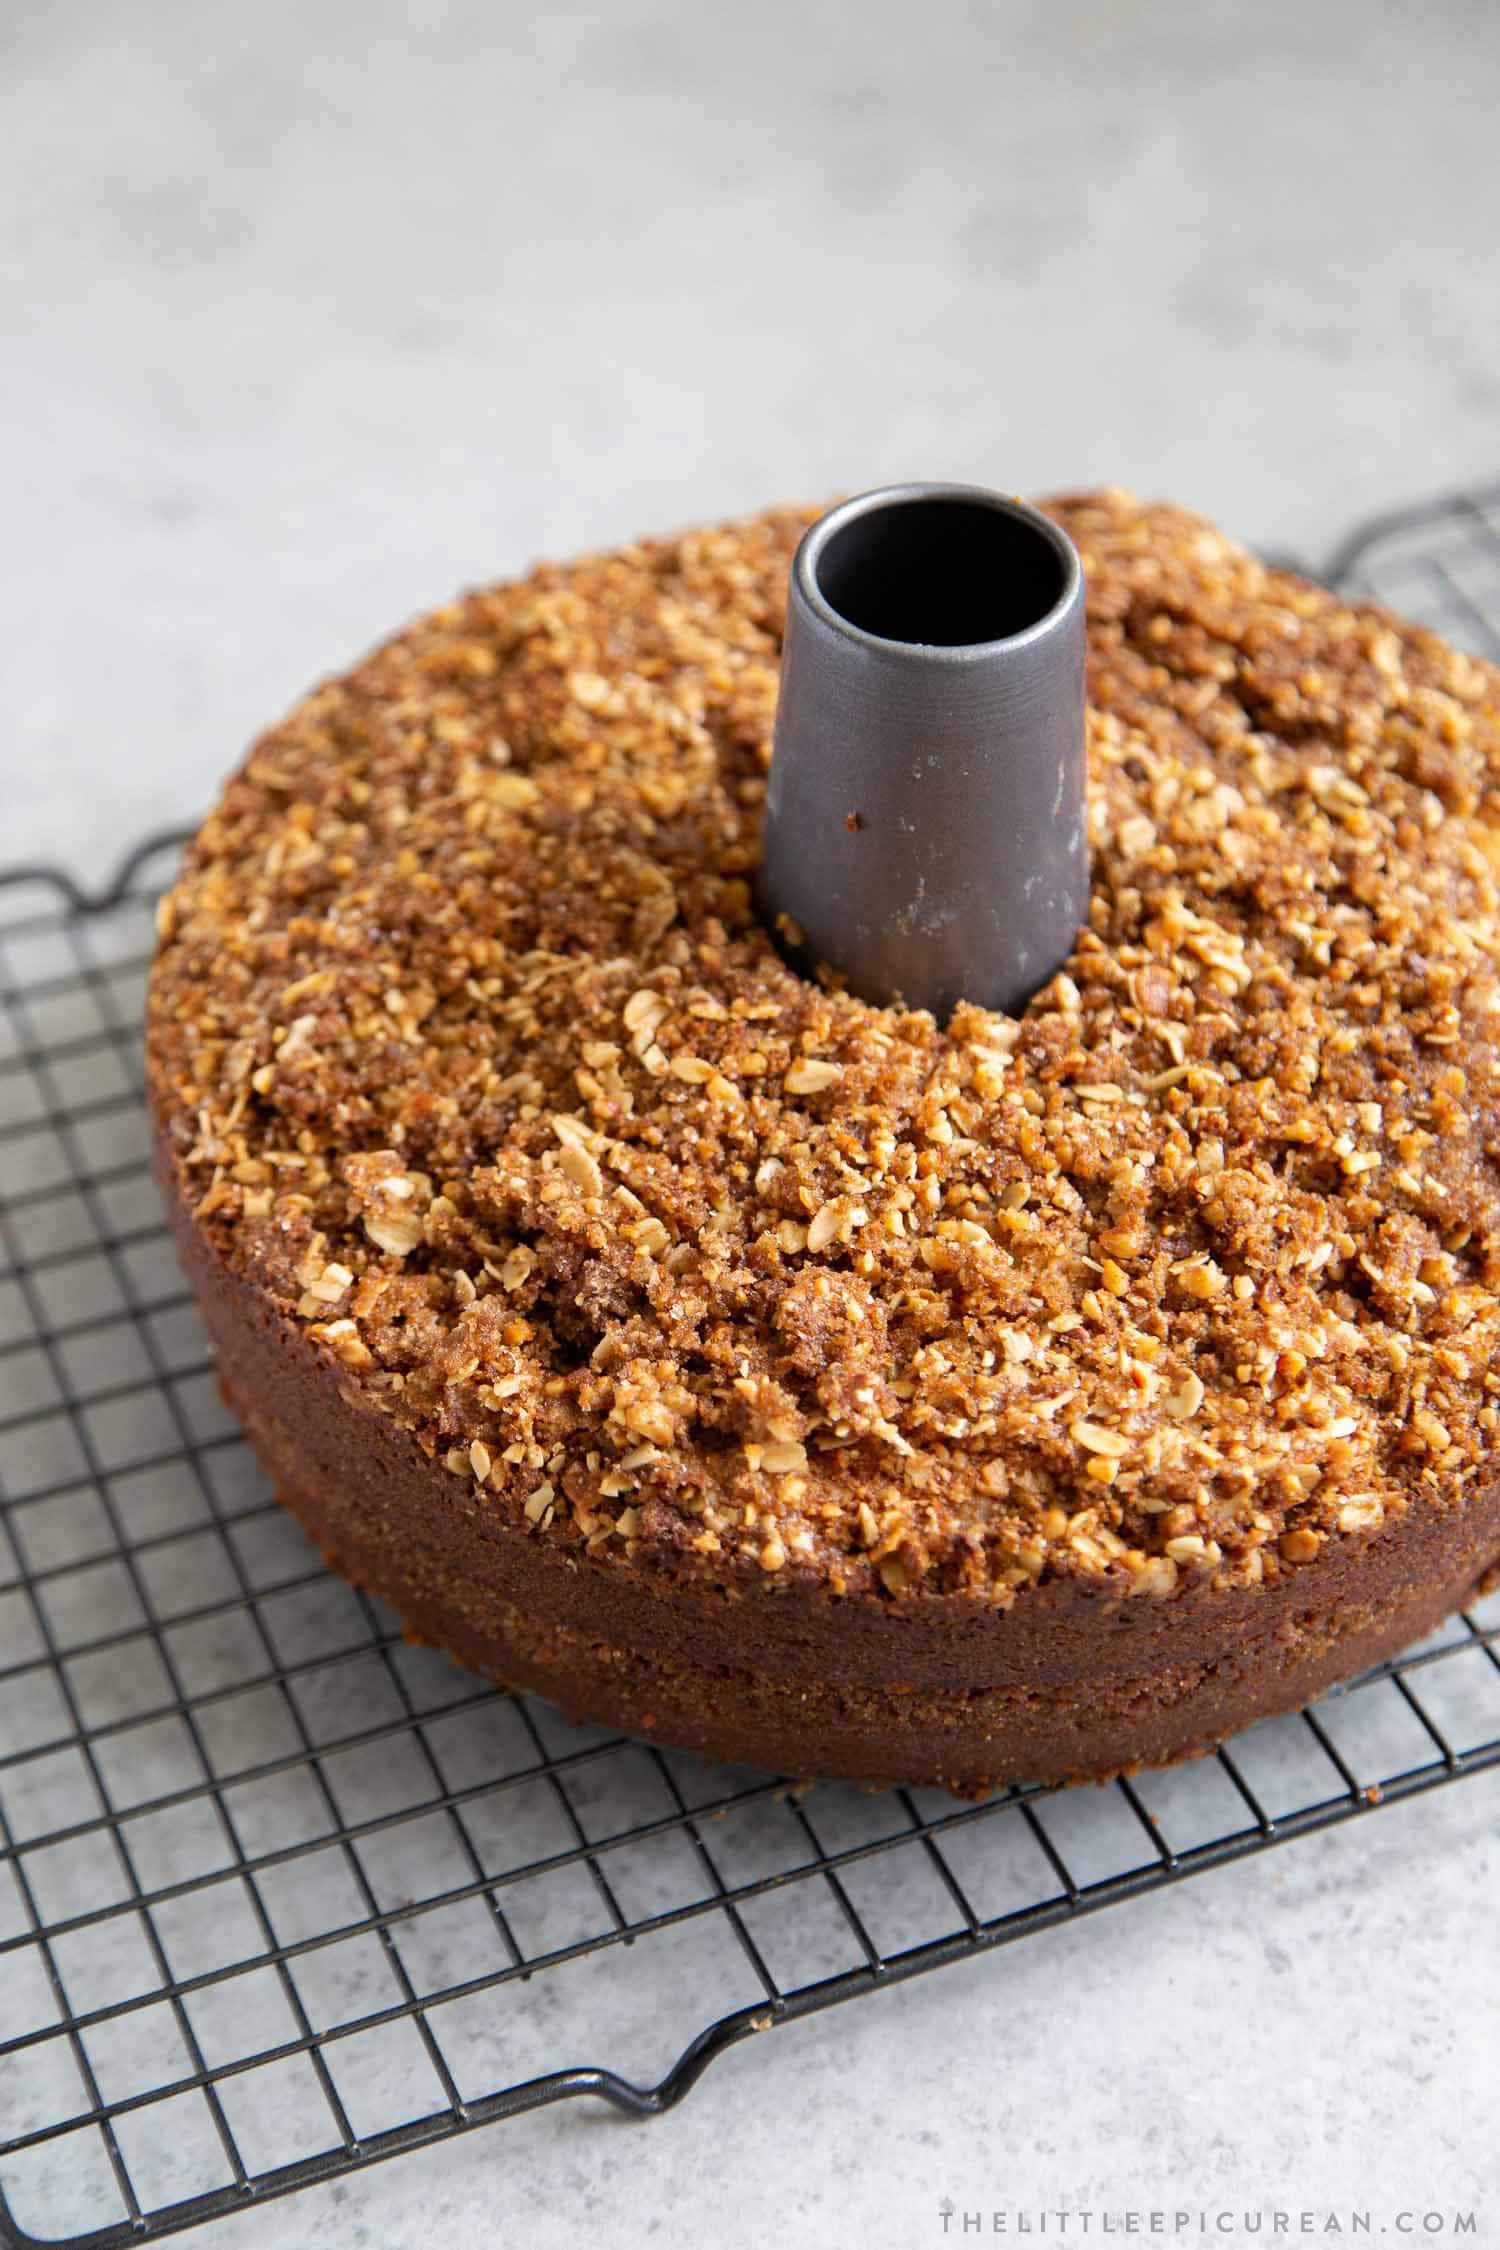 Banana Crumb Cake. Moist banana cake with cinnamon sugar filling topped with walnut oat crumble topping.